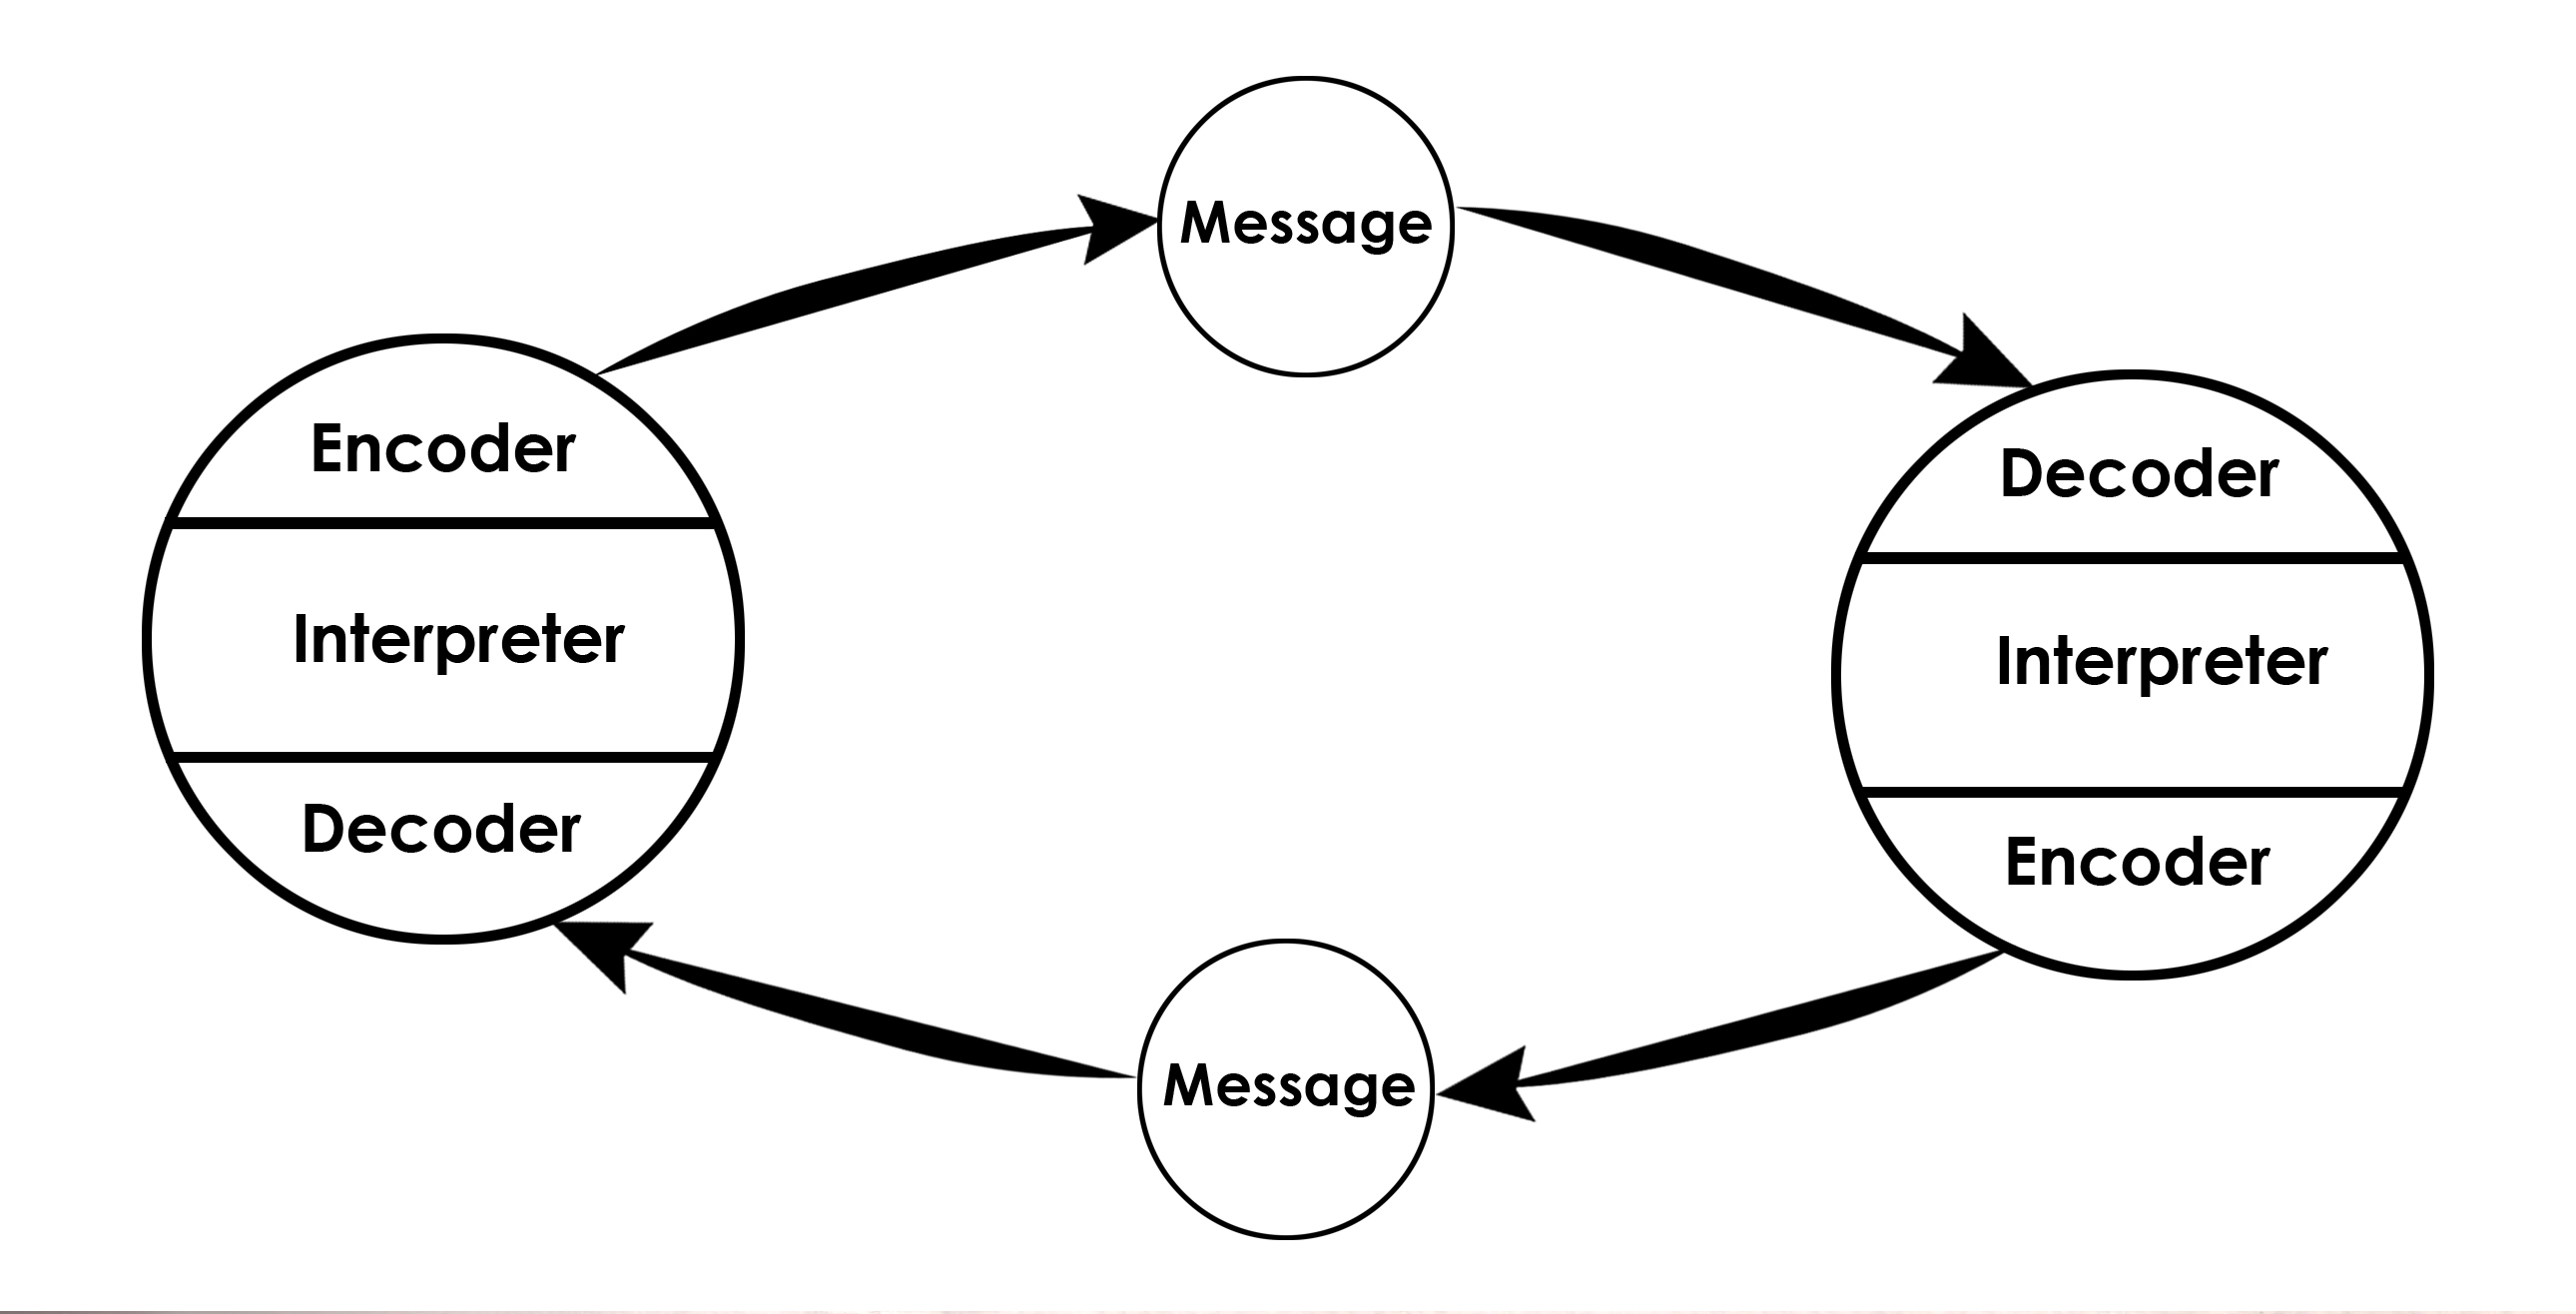 Osgood Schramm Model Of Communication